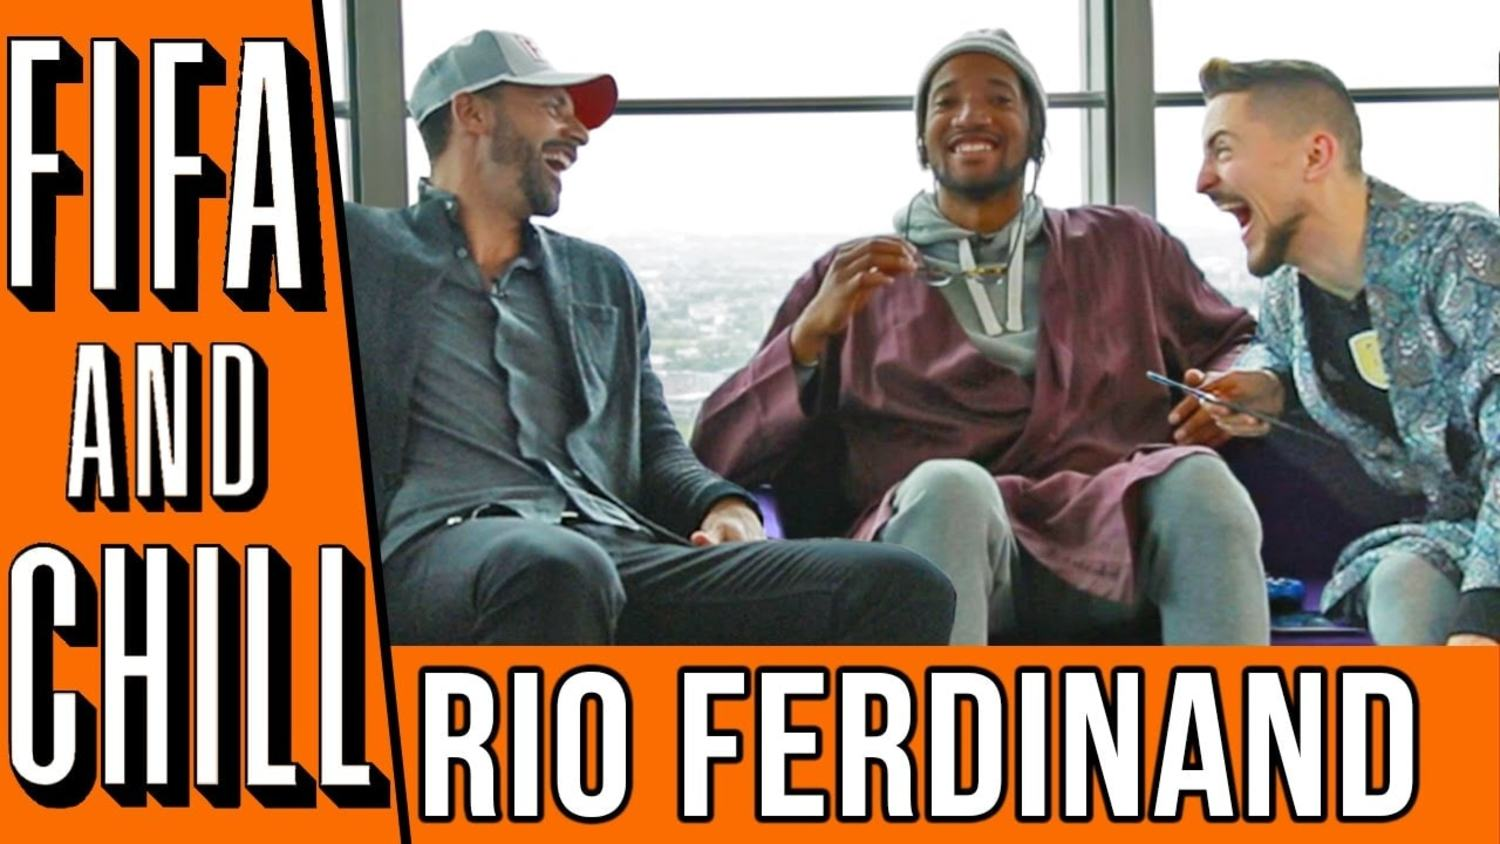 FIFA and Chill with Rio Ferdinand: On Man United, England & more!